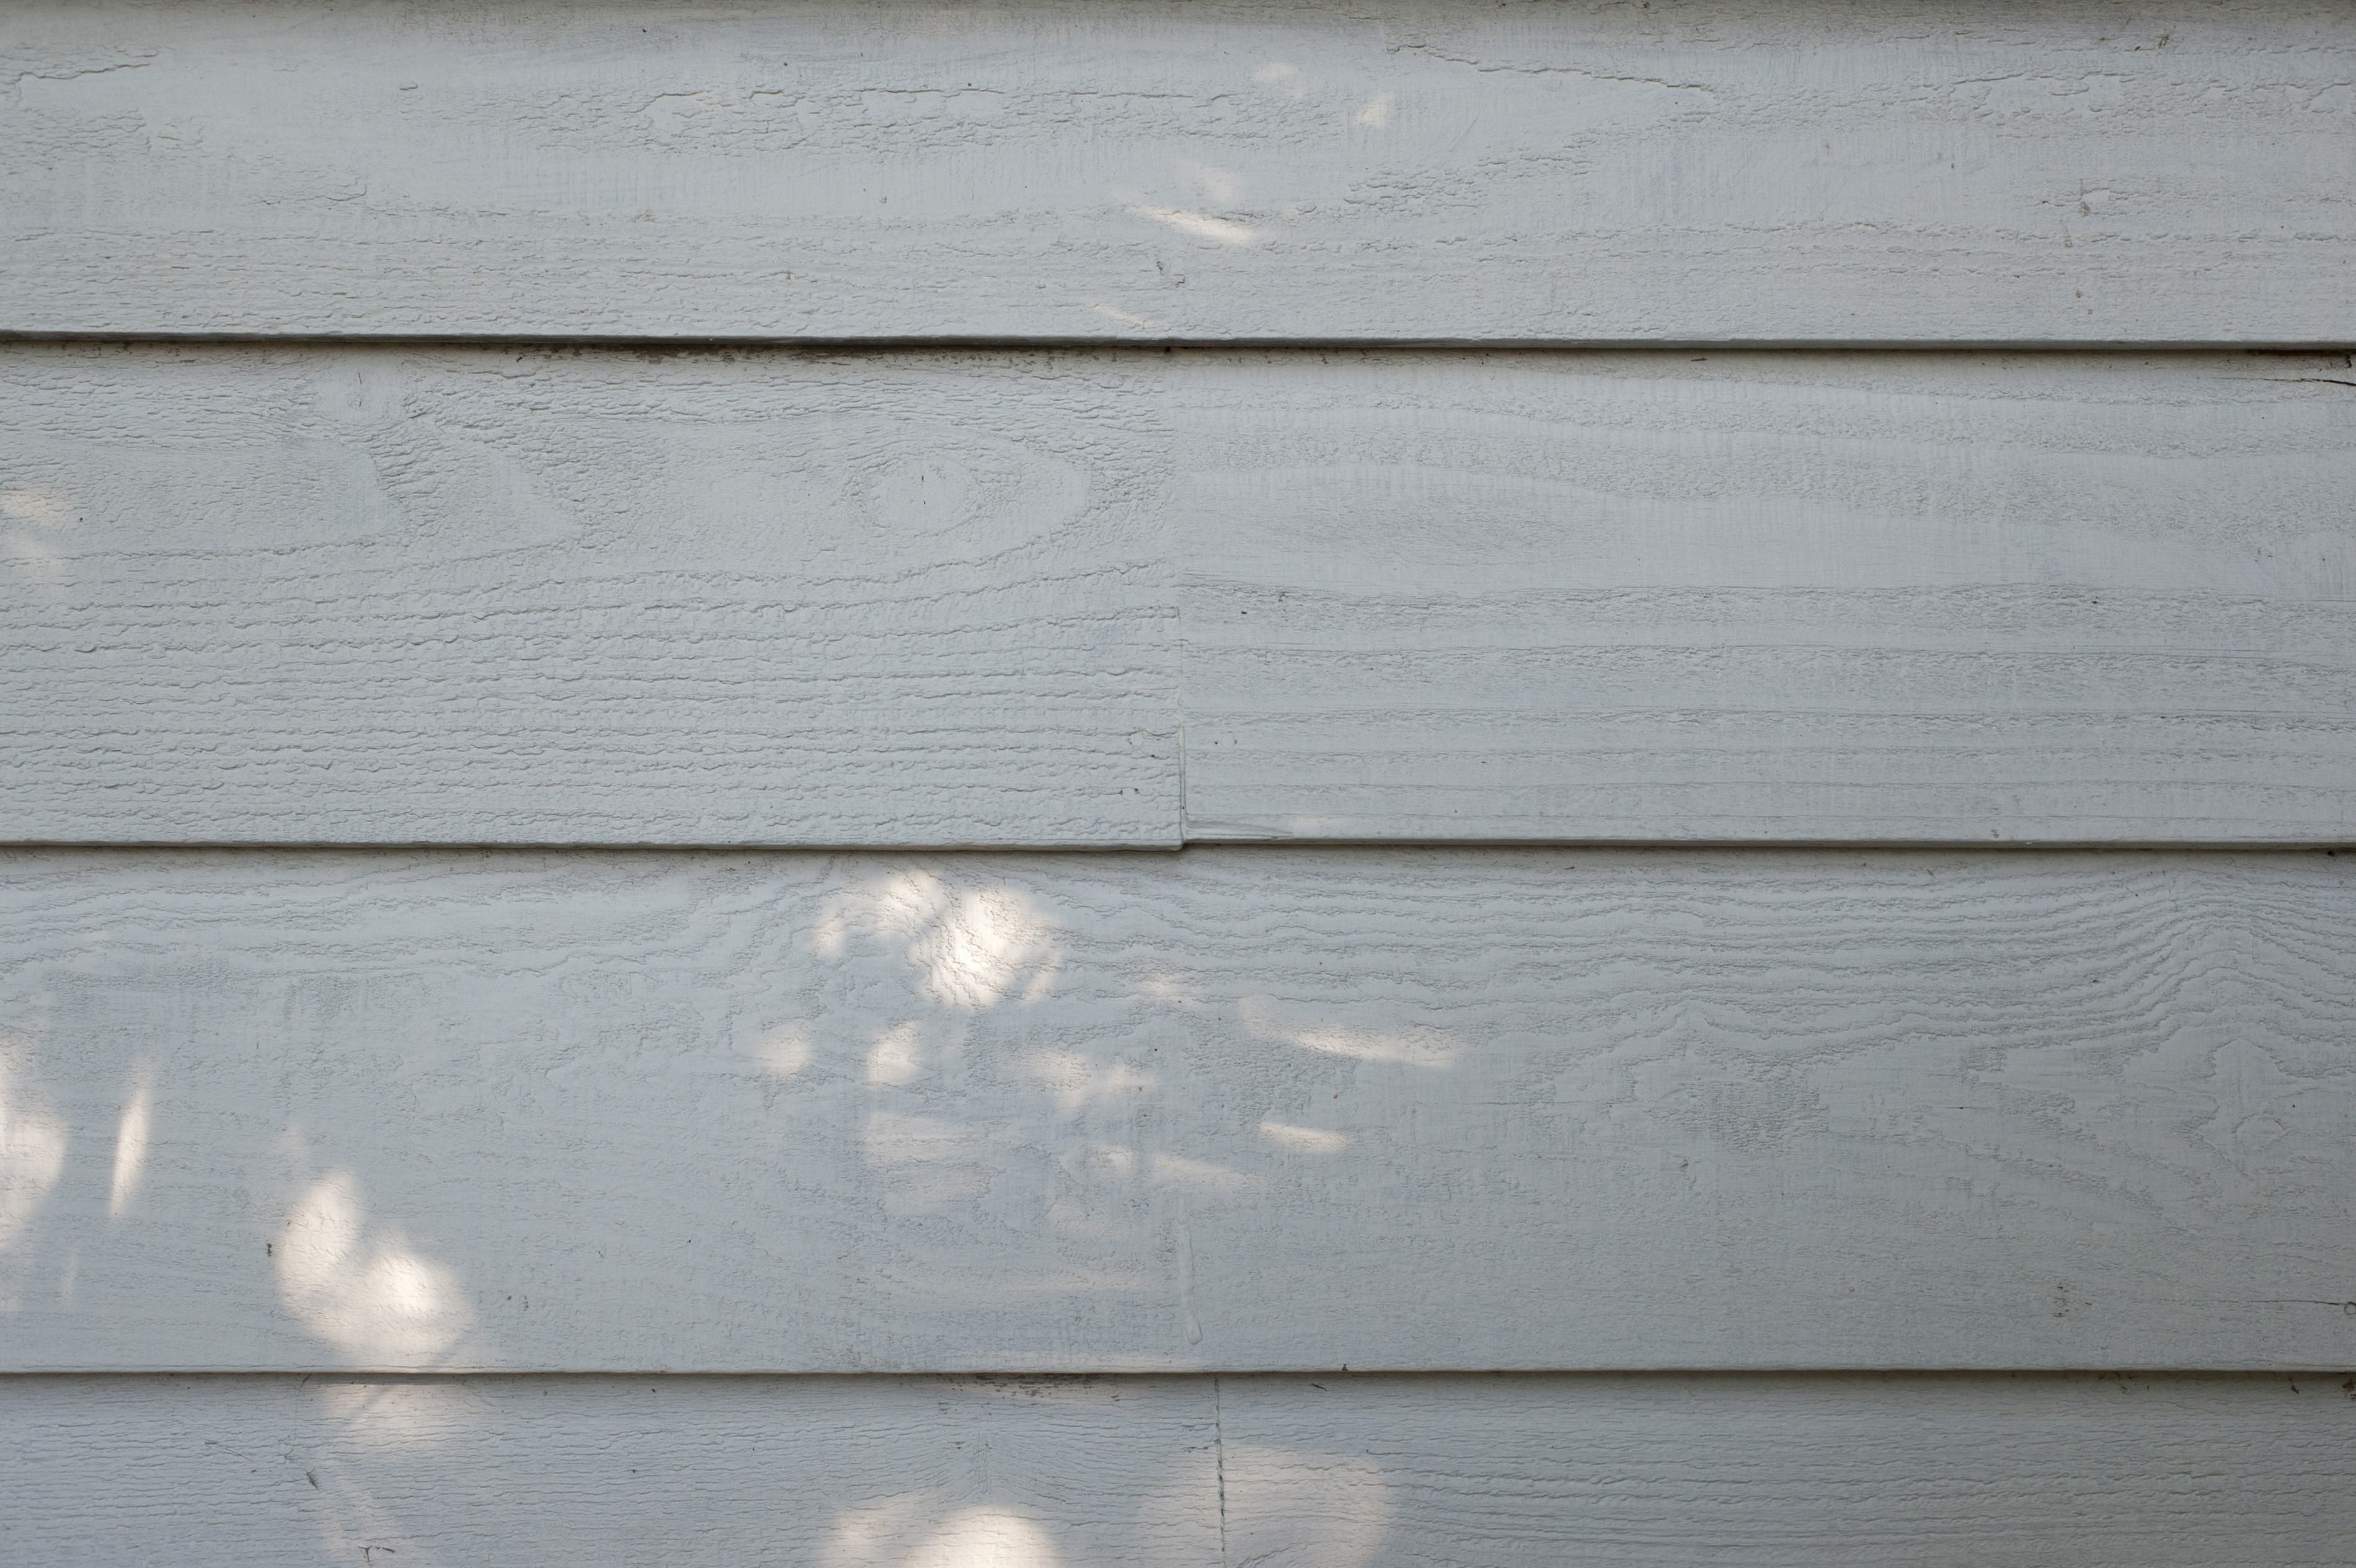 Old painted weatherboards or clapboards used as a cladding and construction material on the exterior of a building